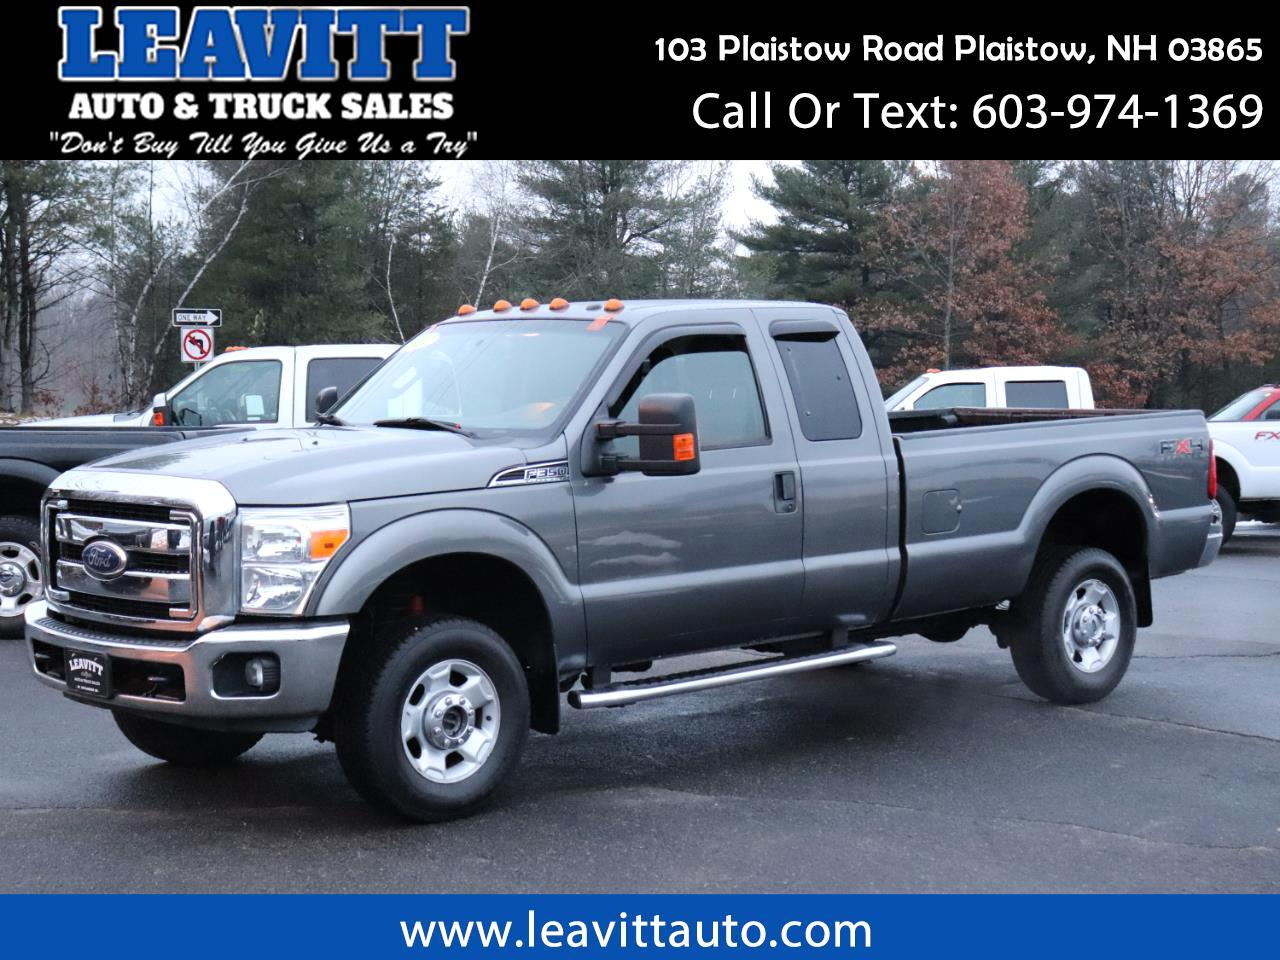 2011 Ford F-350 SD XLT SUPERCAB 8' BED 40K MILES!!!